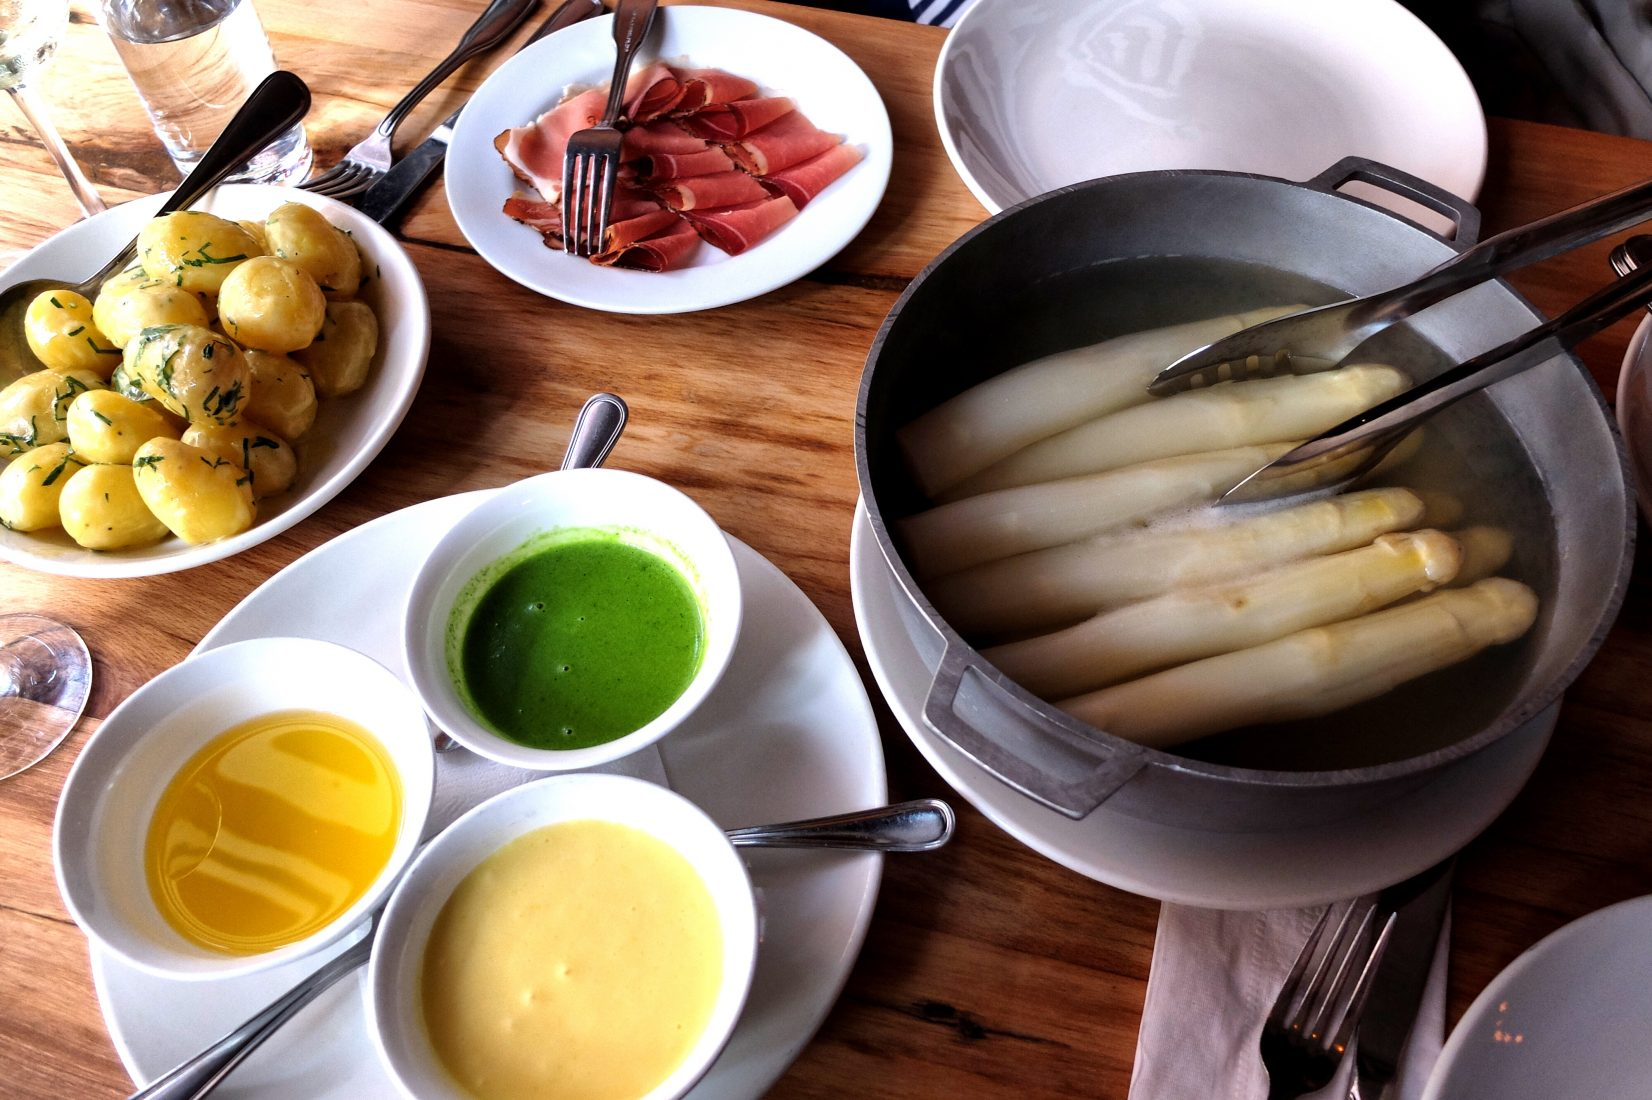 White Asparagus is the star at Cafe Katja on the LES